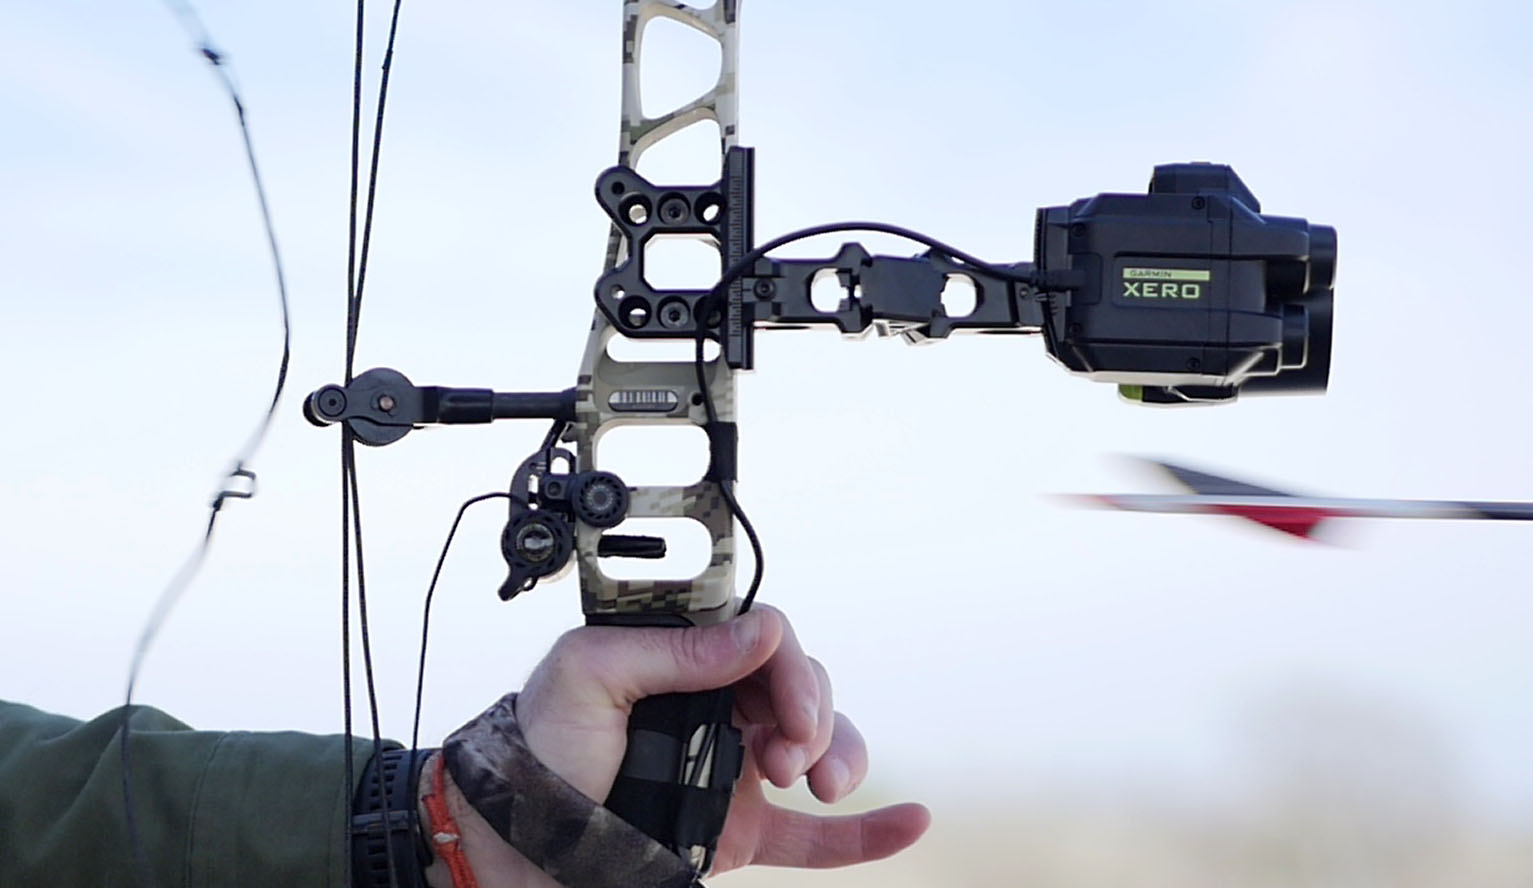 Garmin Xero A1i Bow Sight Review: Field and Hunt Tested | GearJunkie